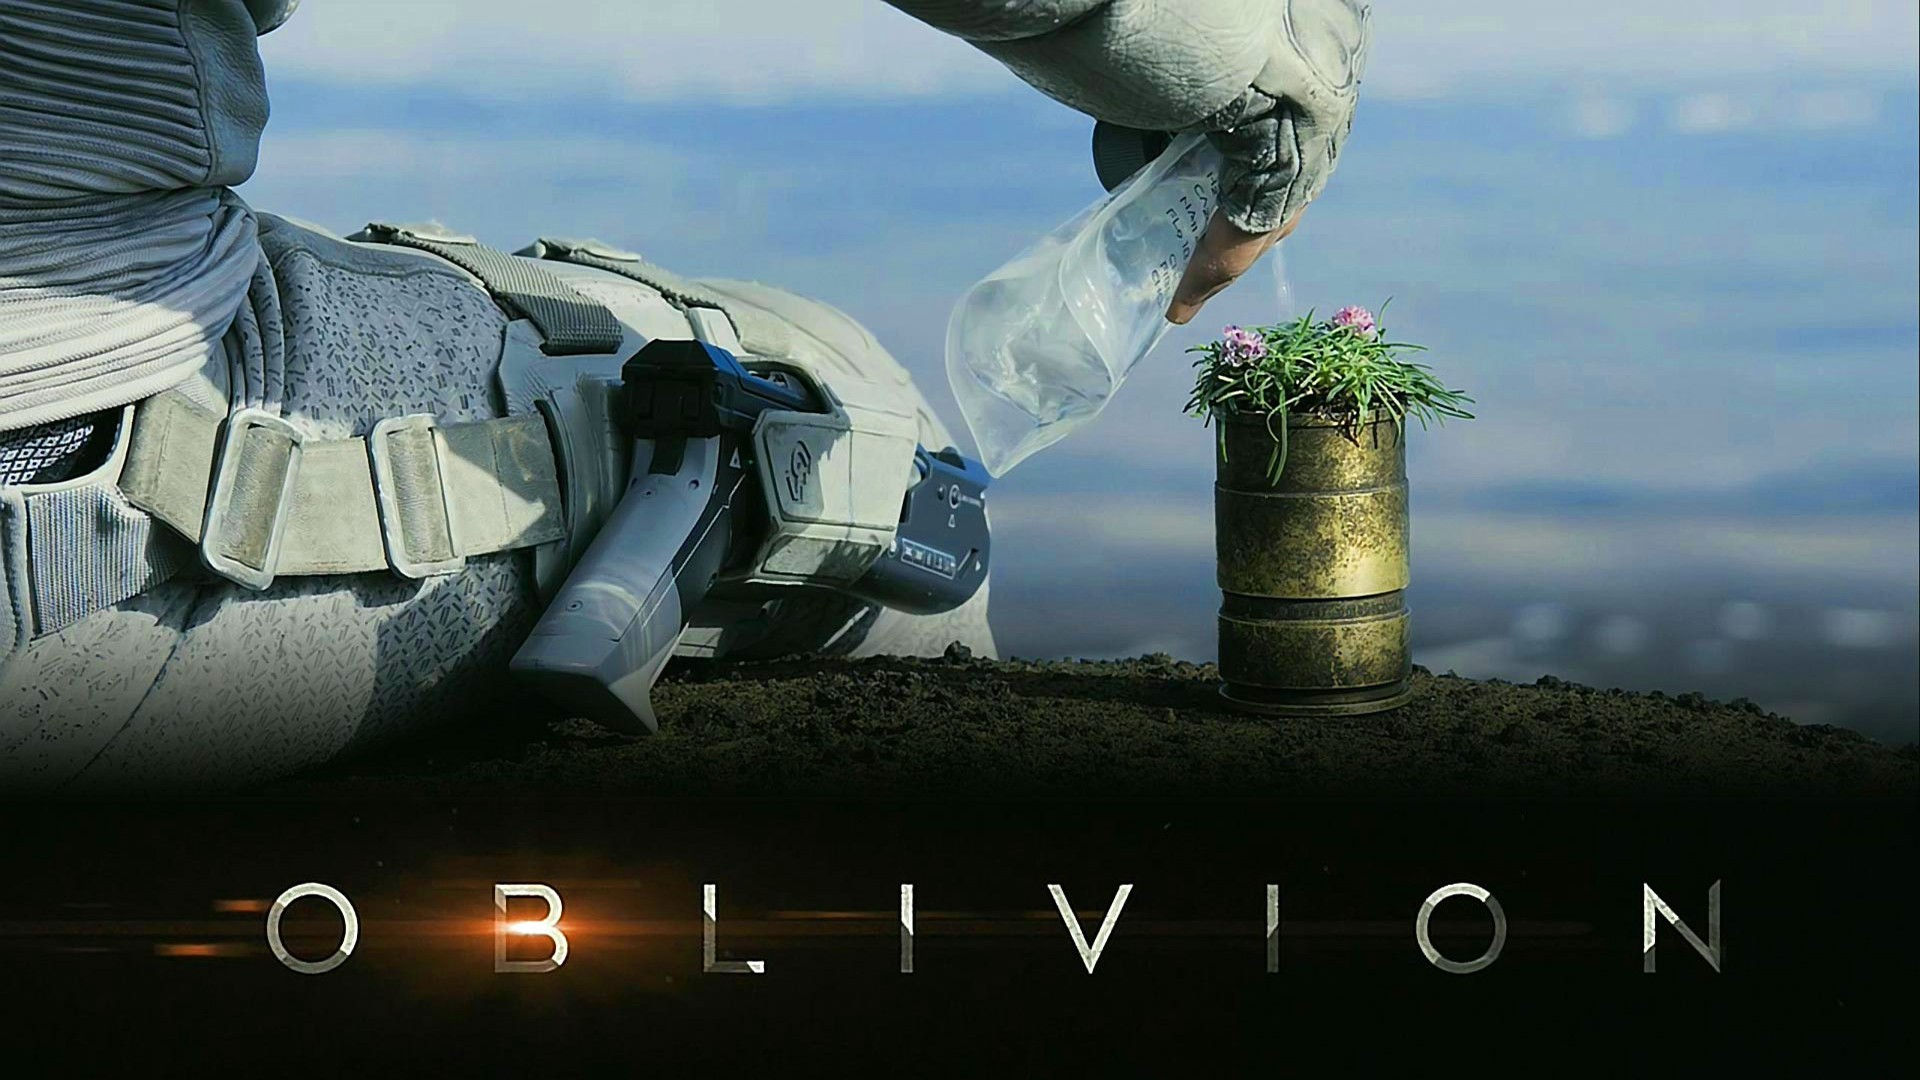 Oblivion Wallpaper Download Free Beautiful Hd Backgrounds For